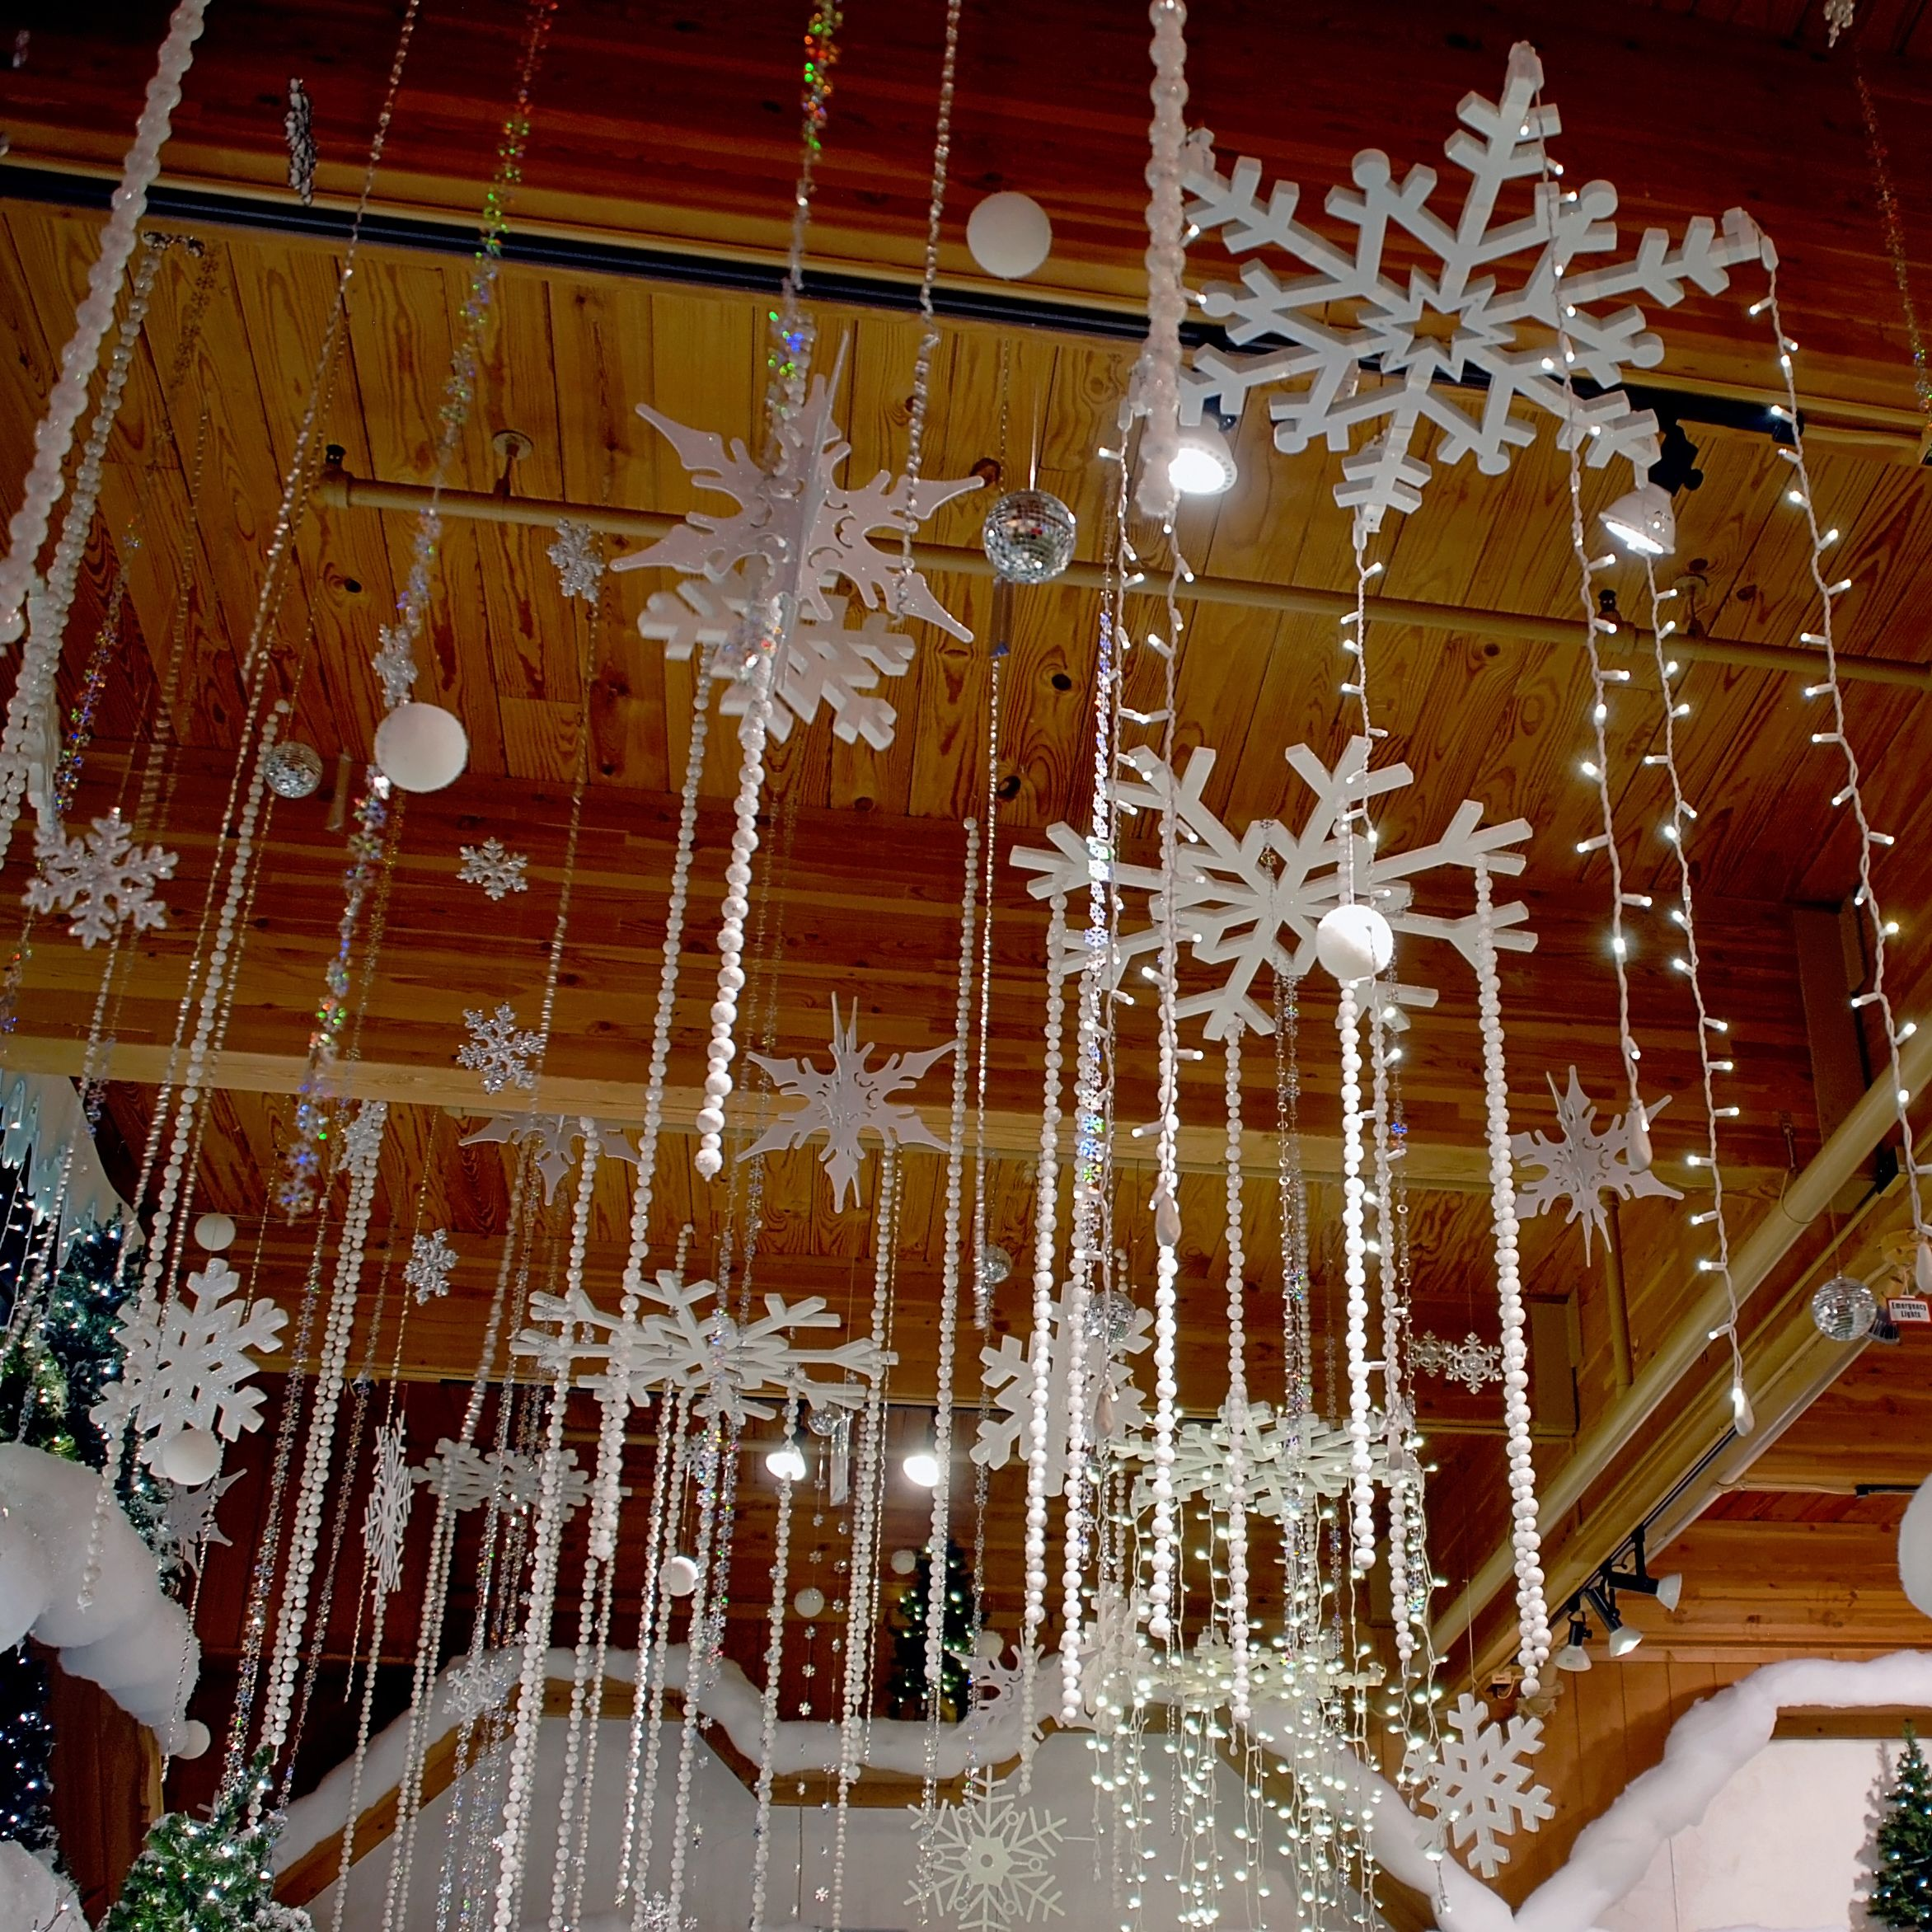 Snowflakes And Twinkling Lights Hang From The Ceiling Above Bronner S Christmas Ceiling Decorations Winter Wonderland Decorations Office Christmas Decorations